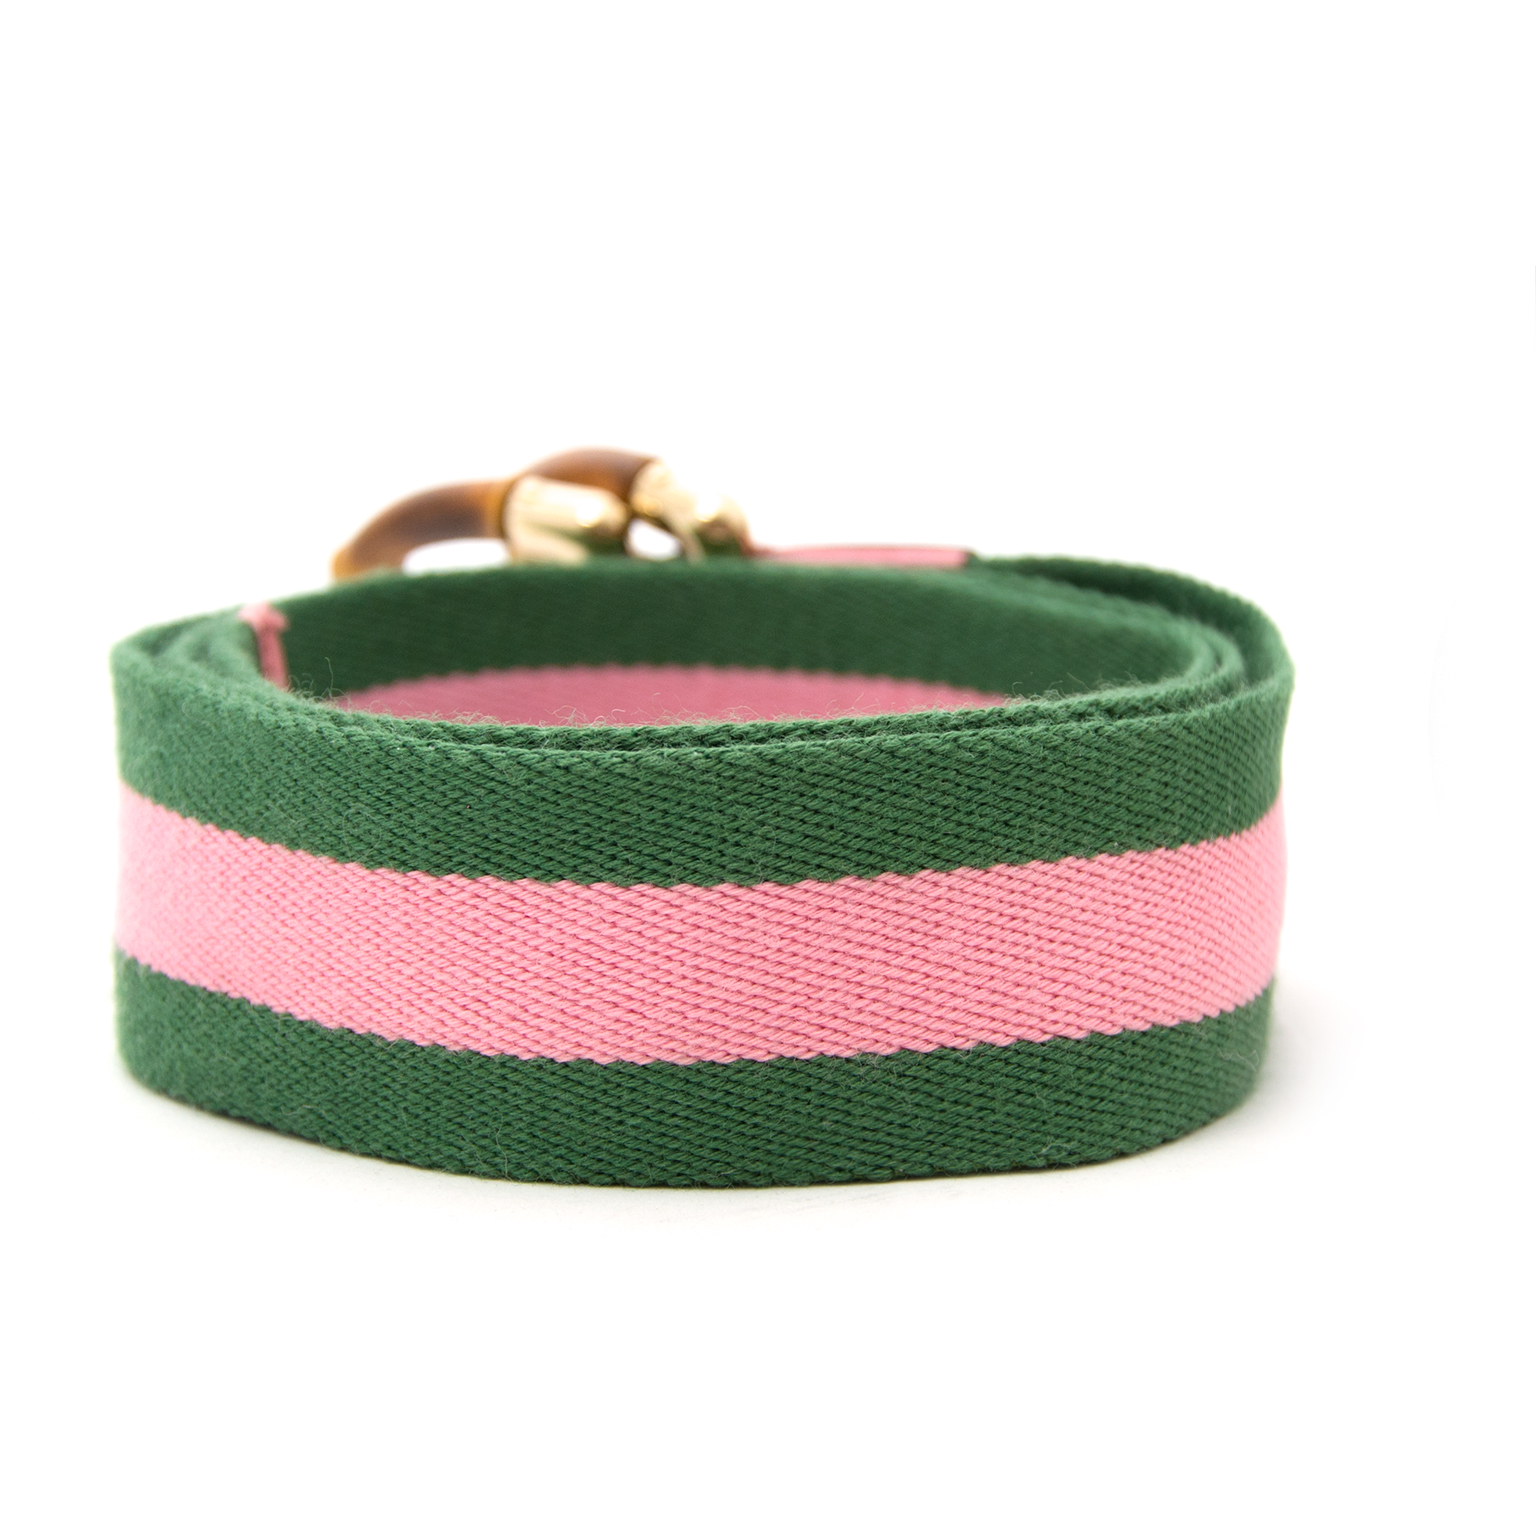 shop safe online at the best price Gucci Canvas Web Bamboo Belt